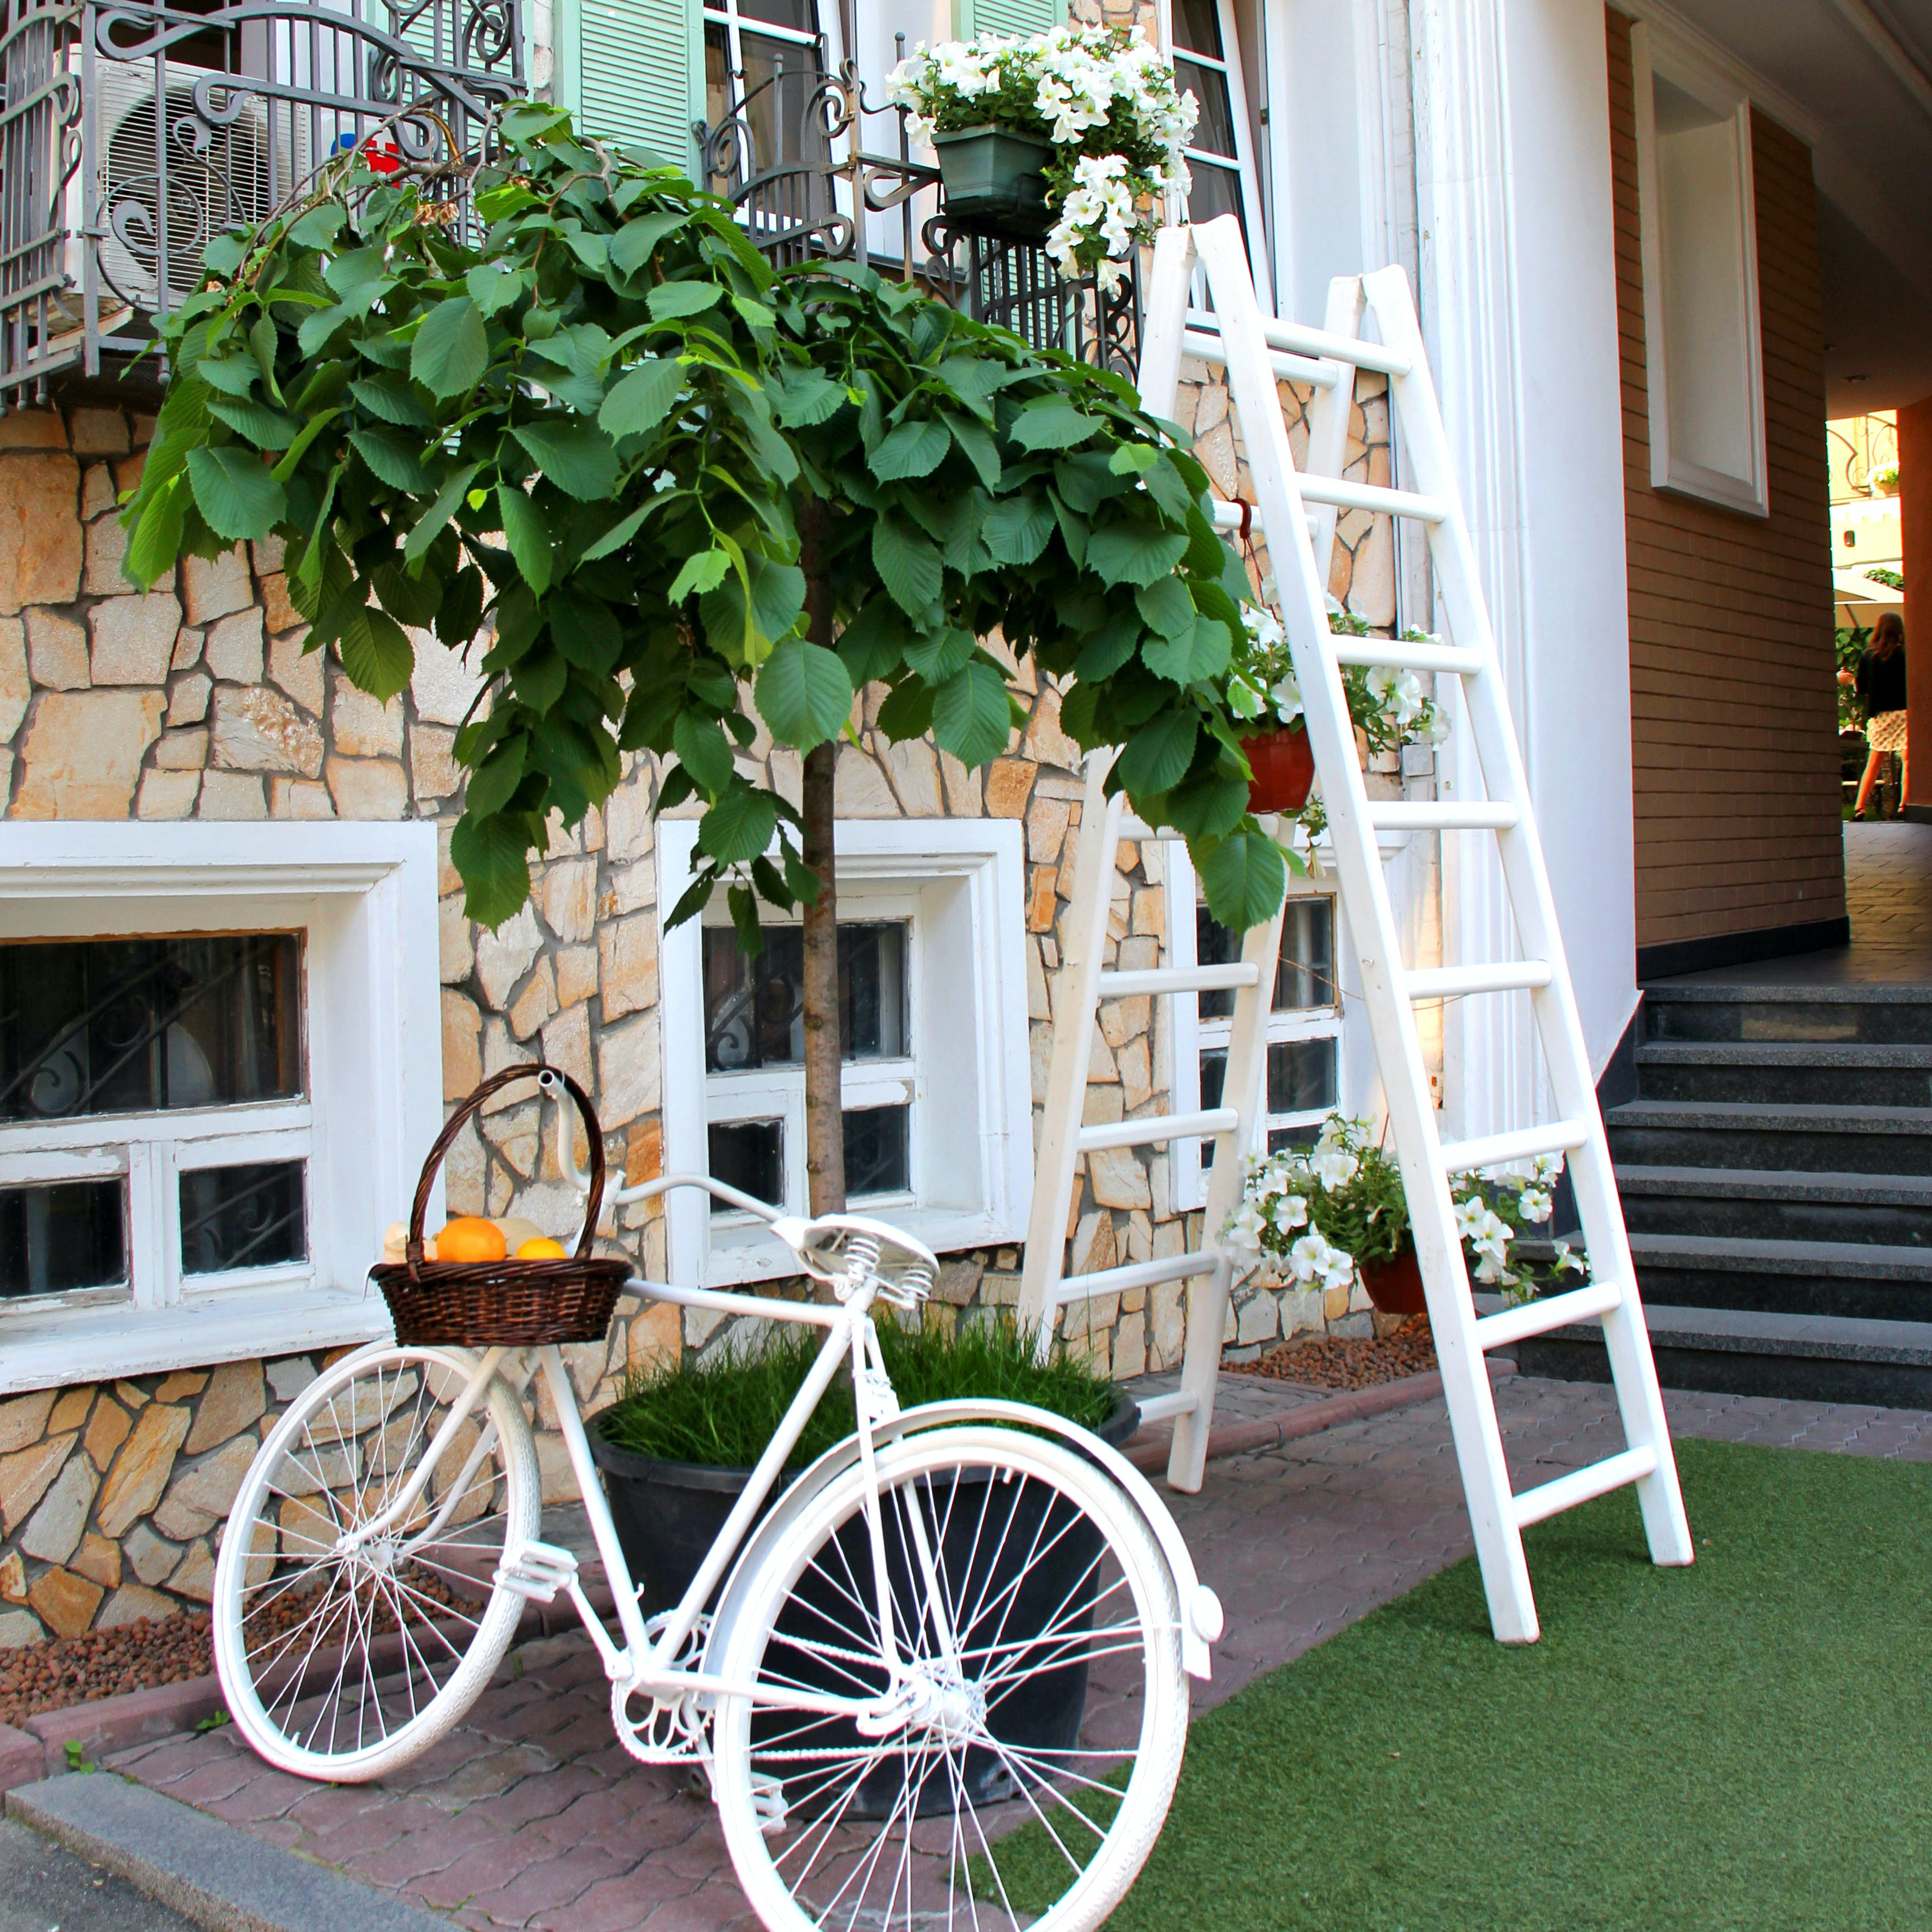 White Step Through Bicycle Leaning Beside Tree Plant